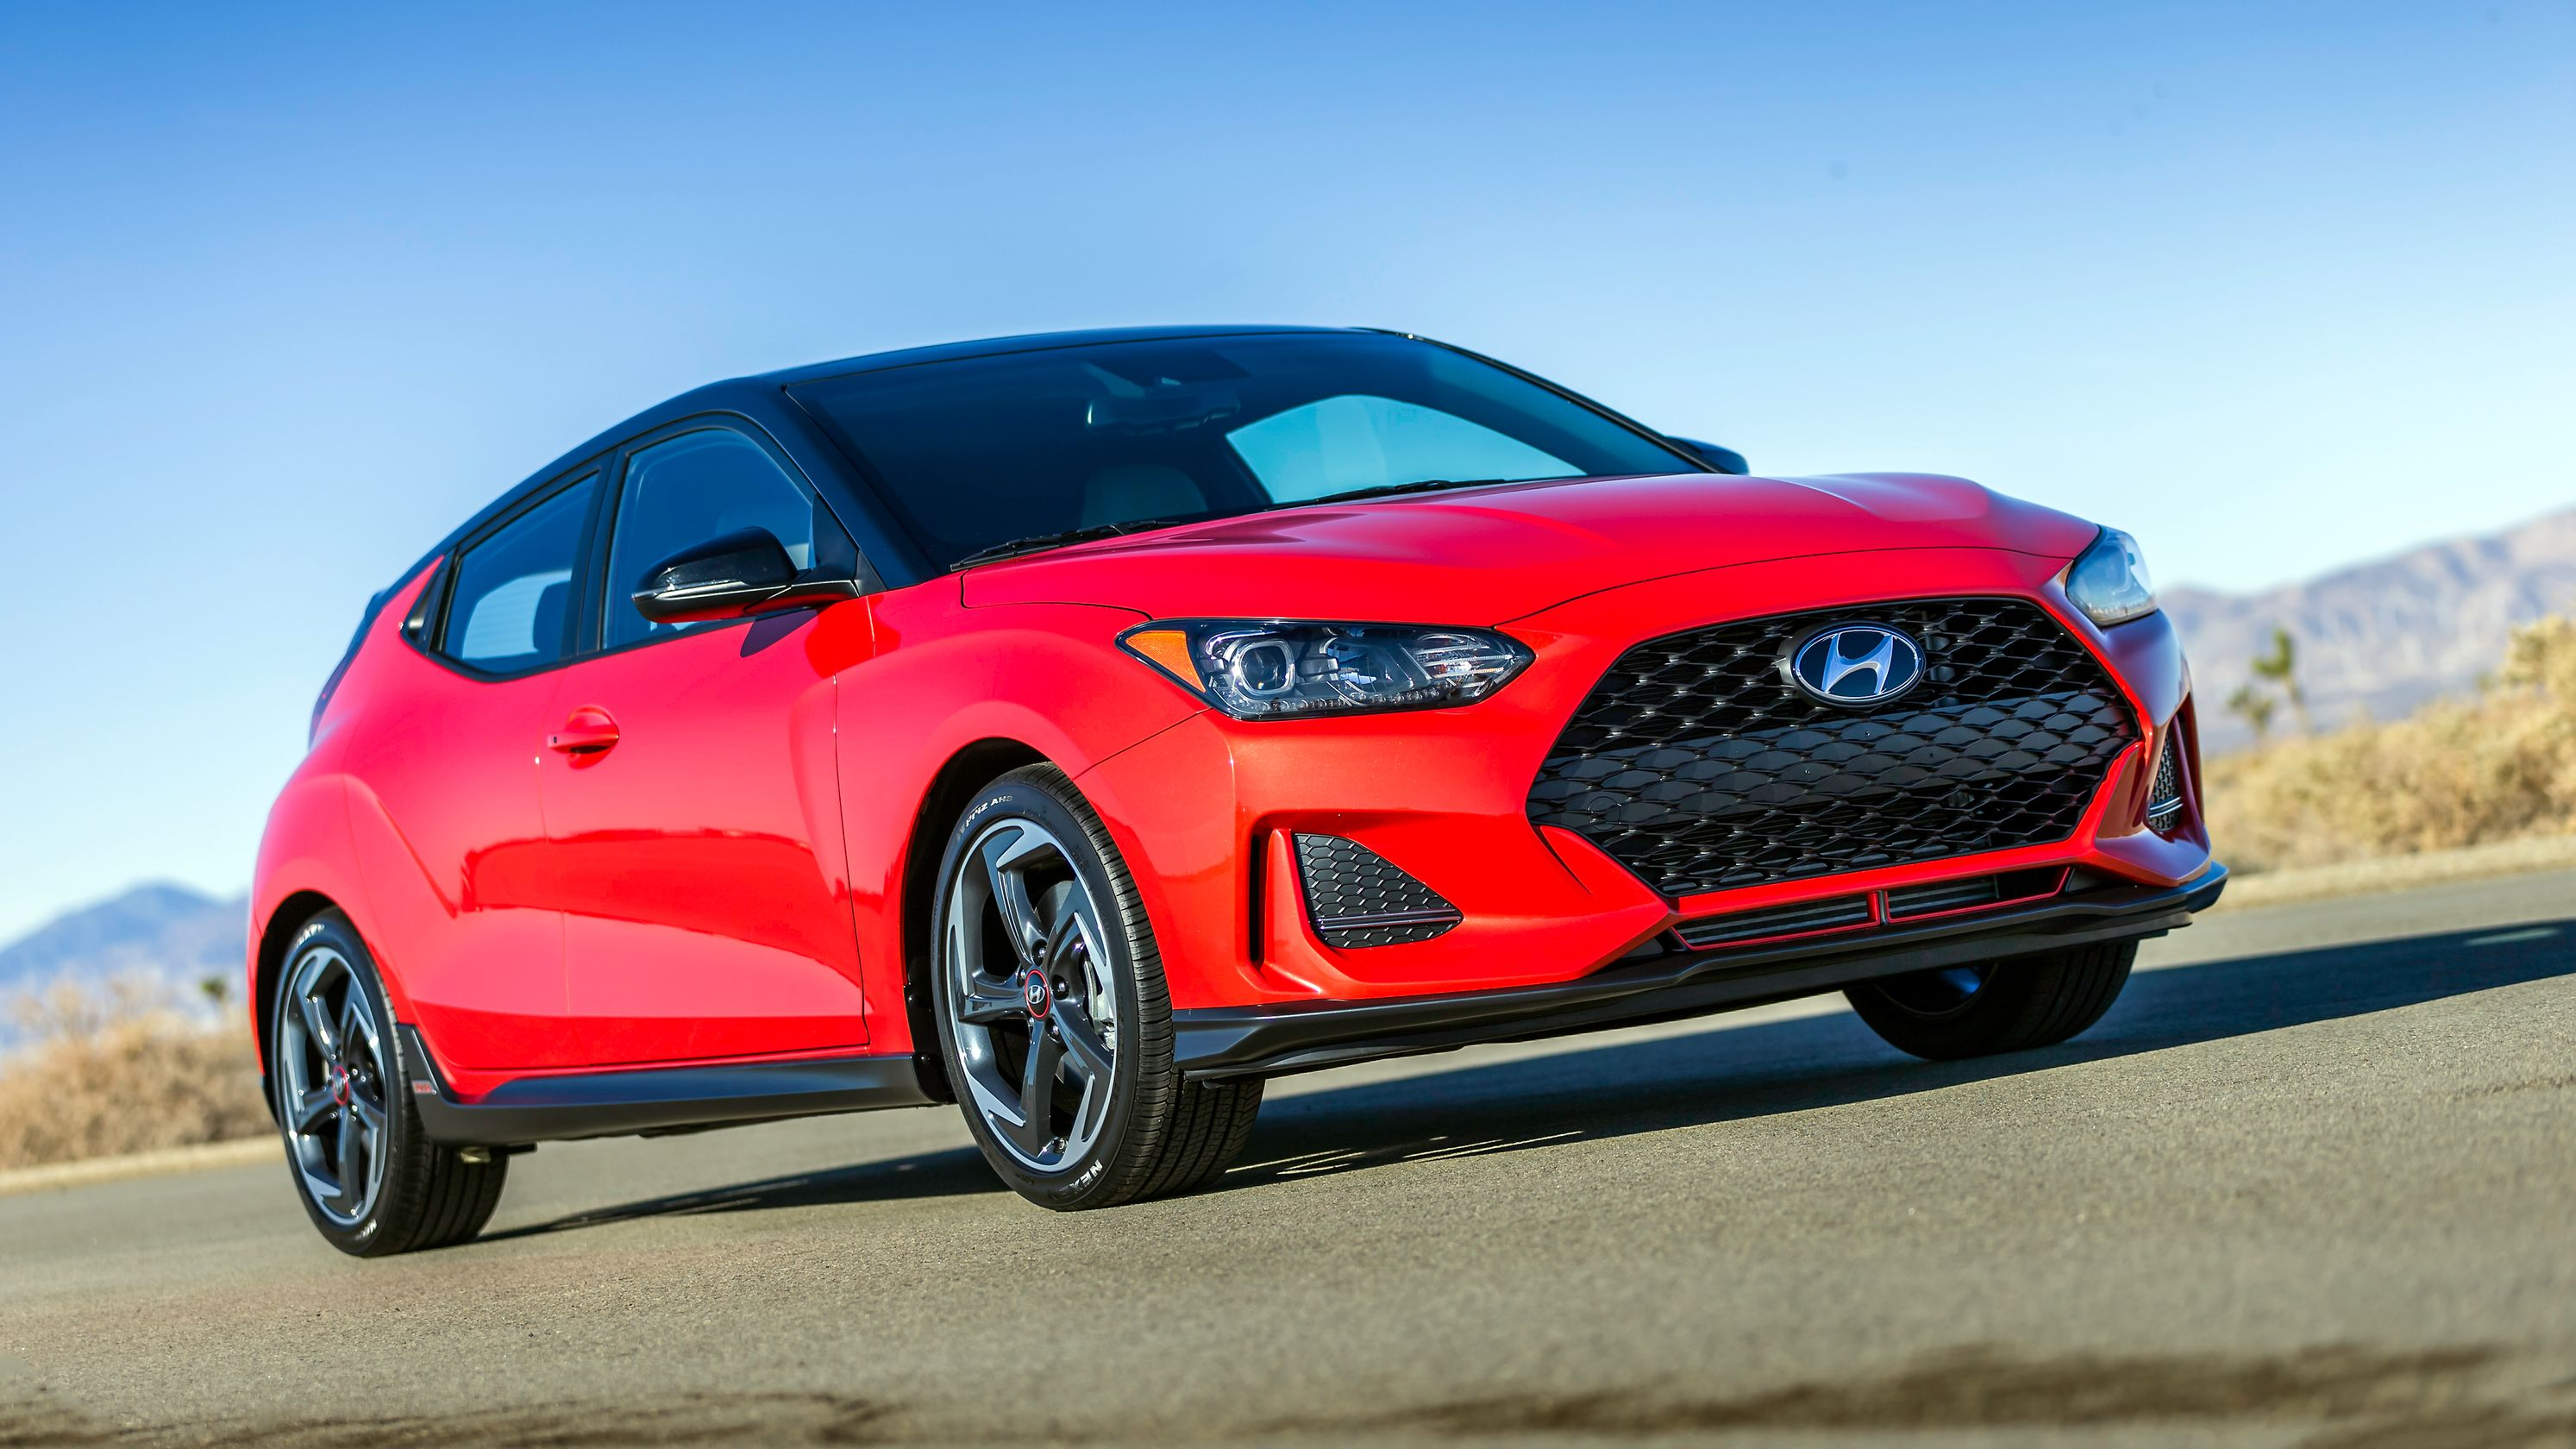 44 The 2019 Hyundai Veloster Turbo Photos